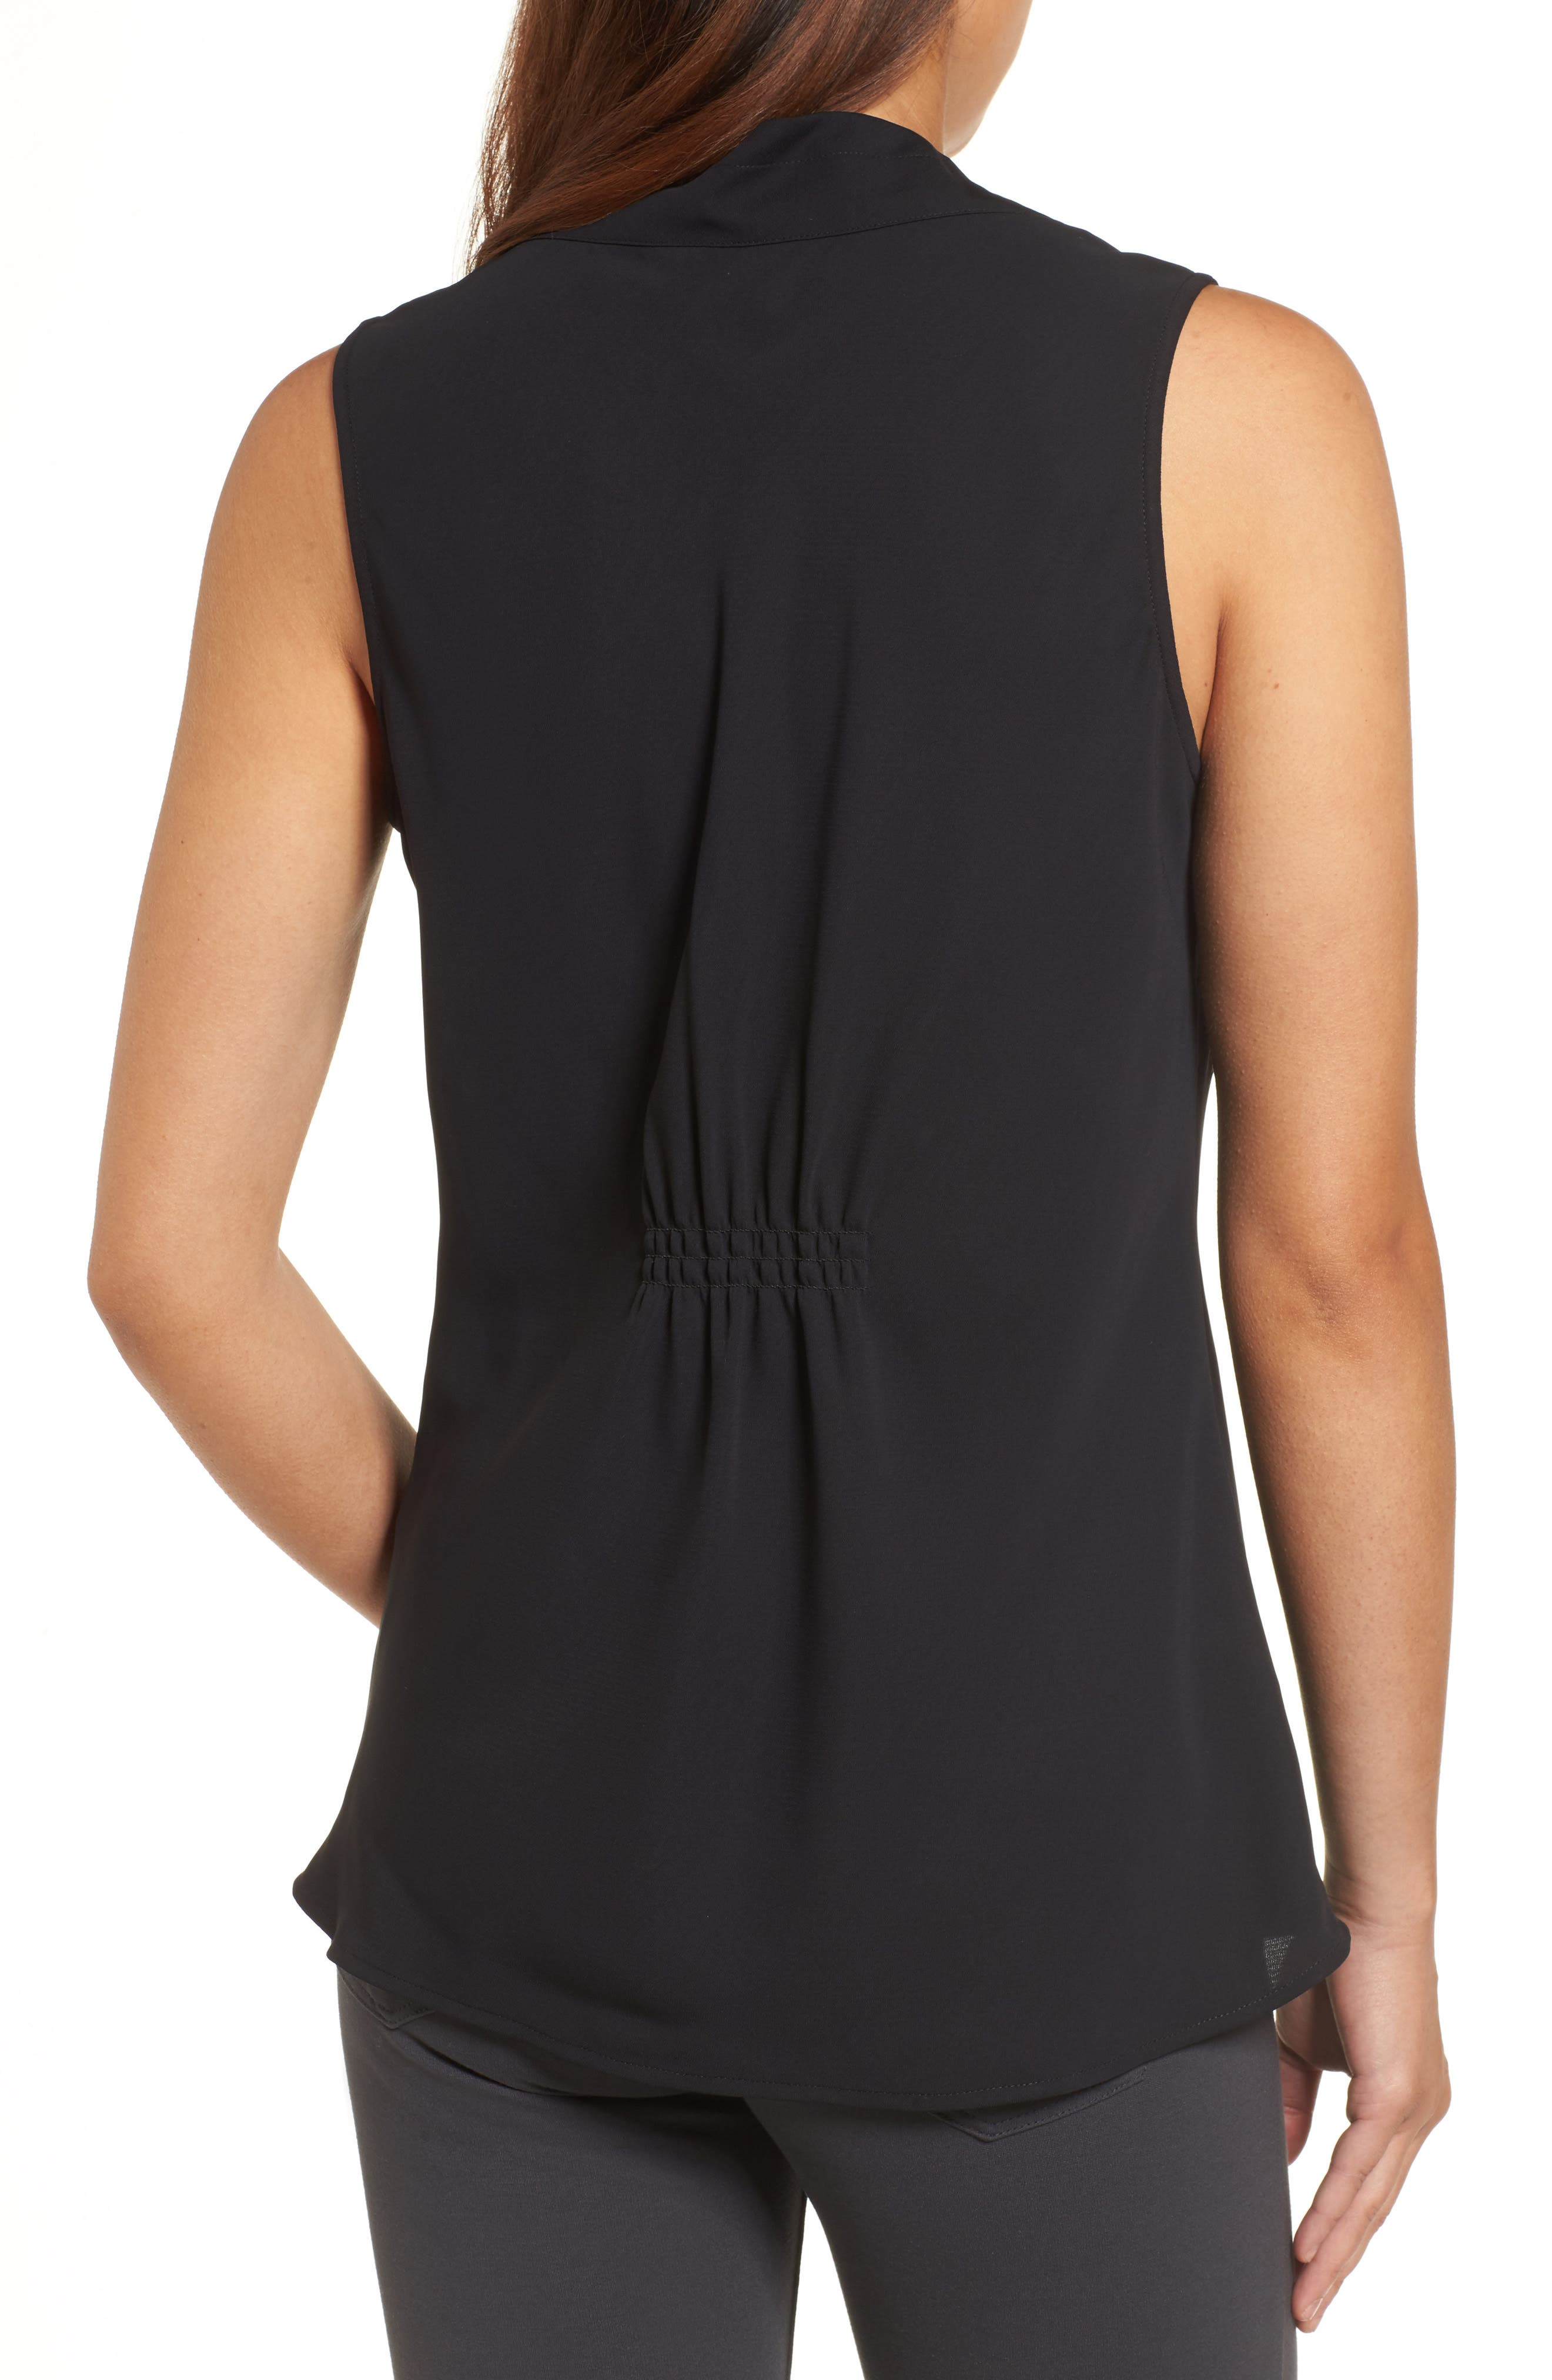 Day to Night Top,                             Alternate thumbnail 2, color,                             BLACK ONYX